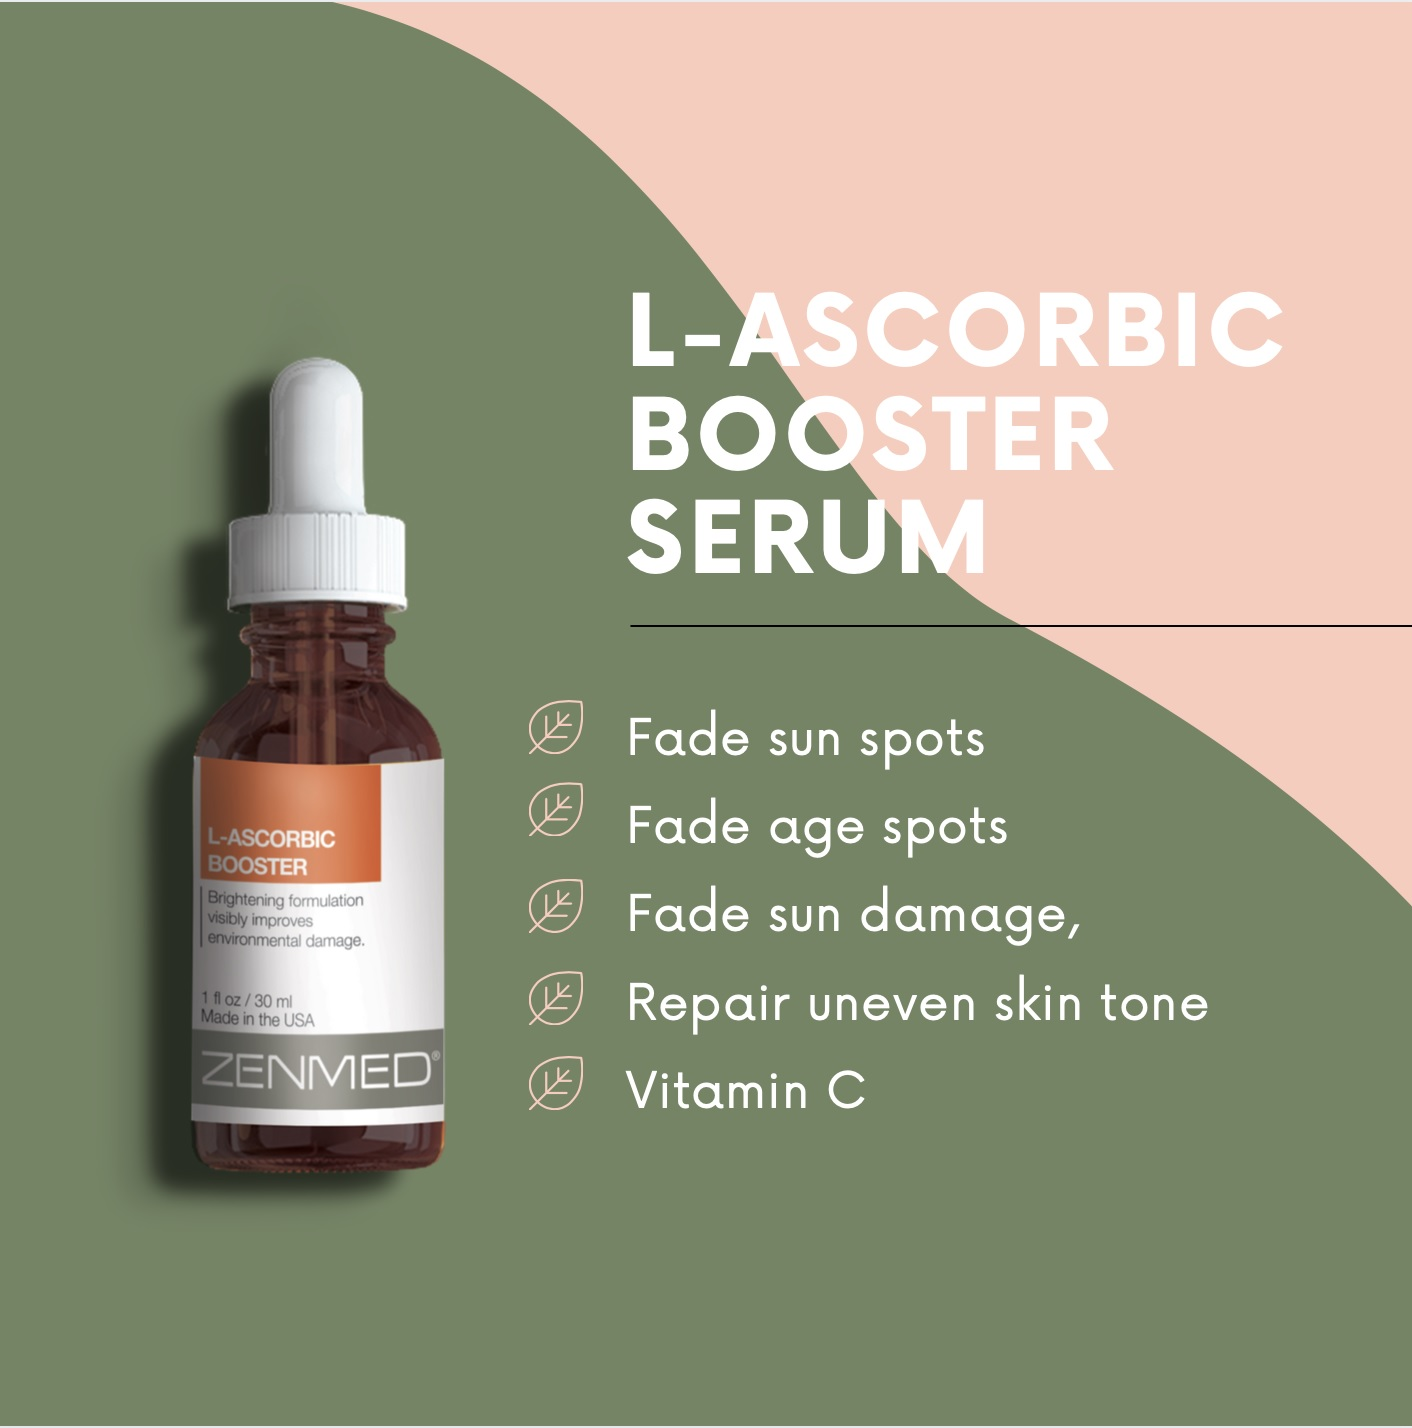 Zenmed L-Ascorbic Booster Serum is a Perfect Serum for your Face